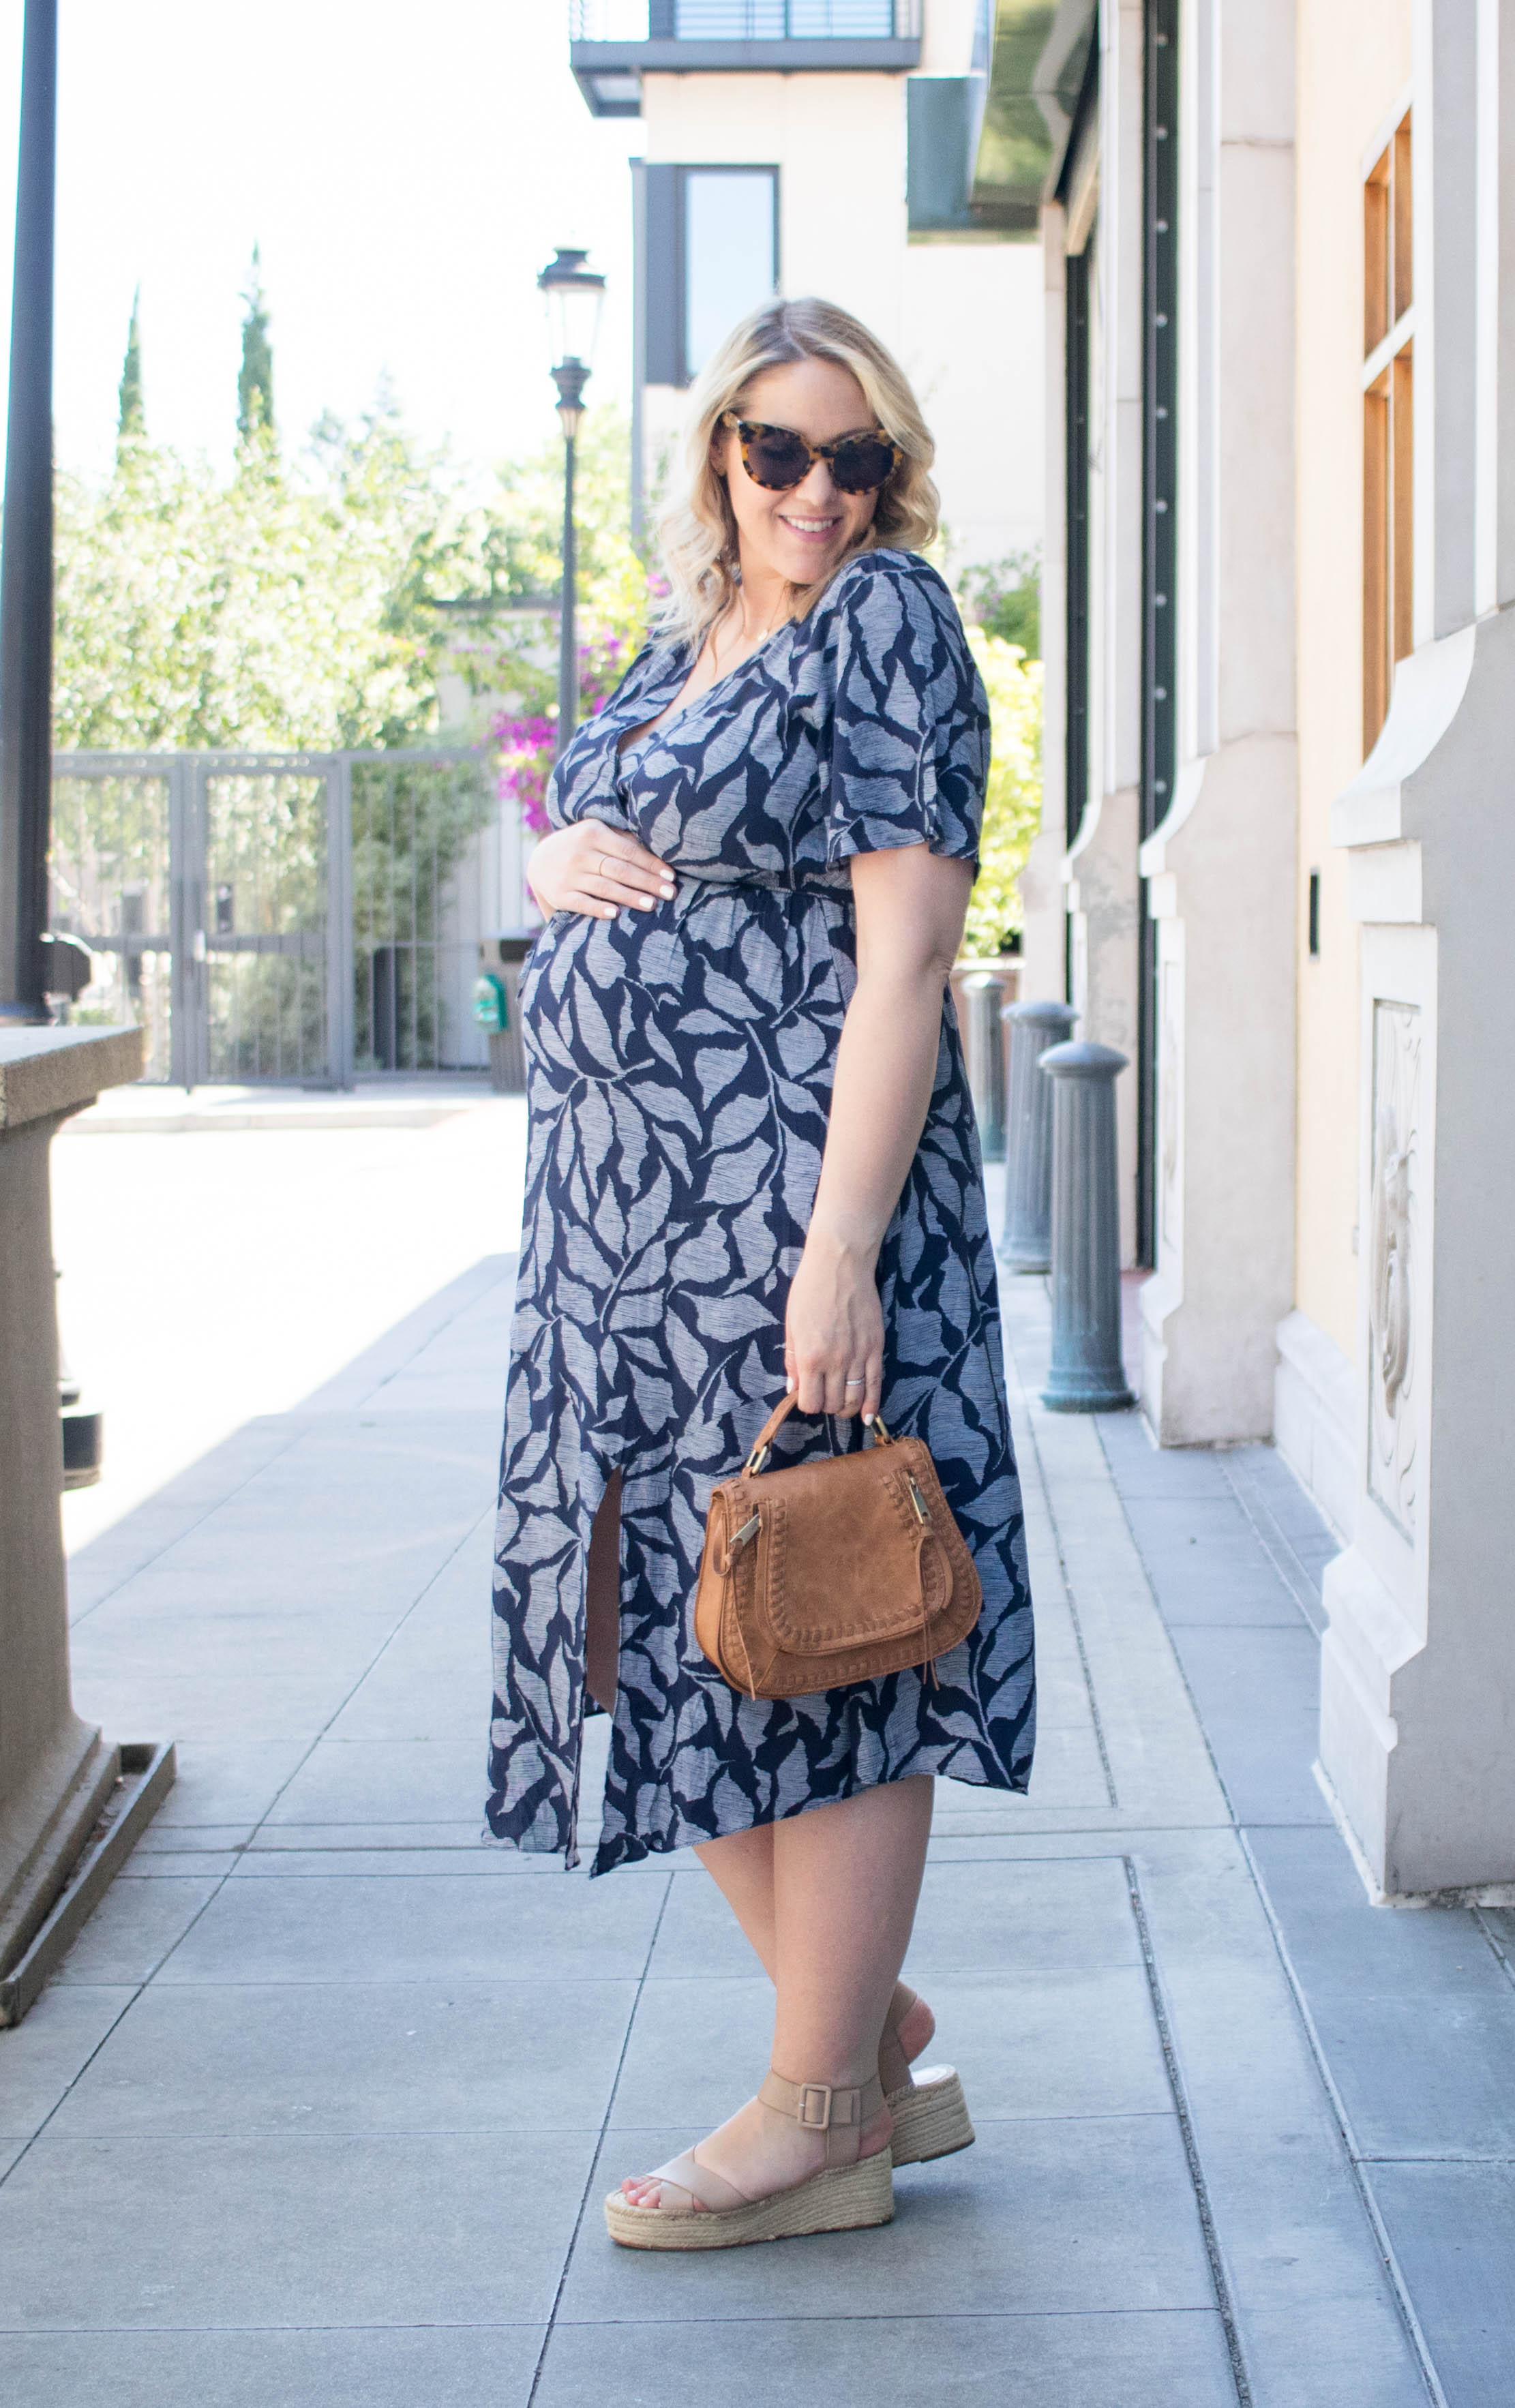 ingrid & isabel maternity wrap dress outfit #maternitystyle #pregnancystyle #maternitydress